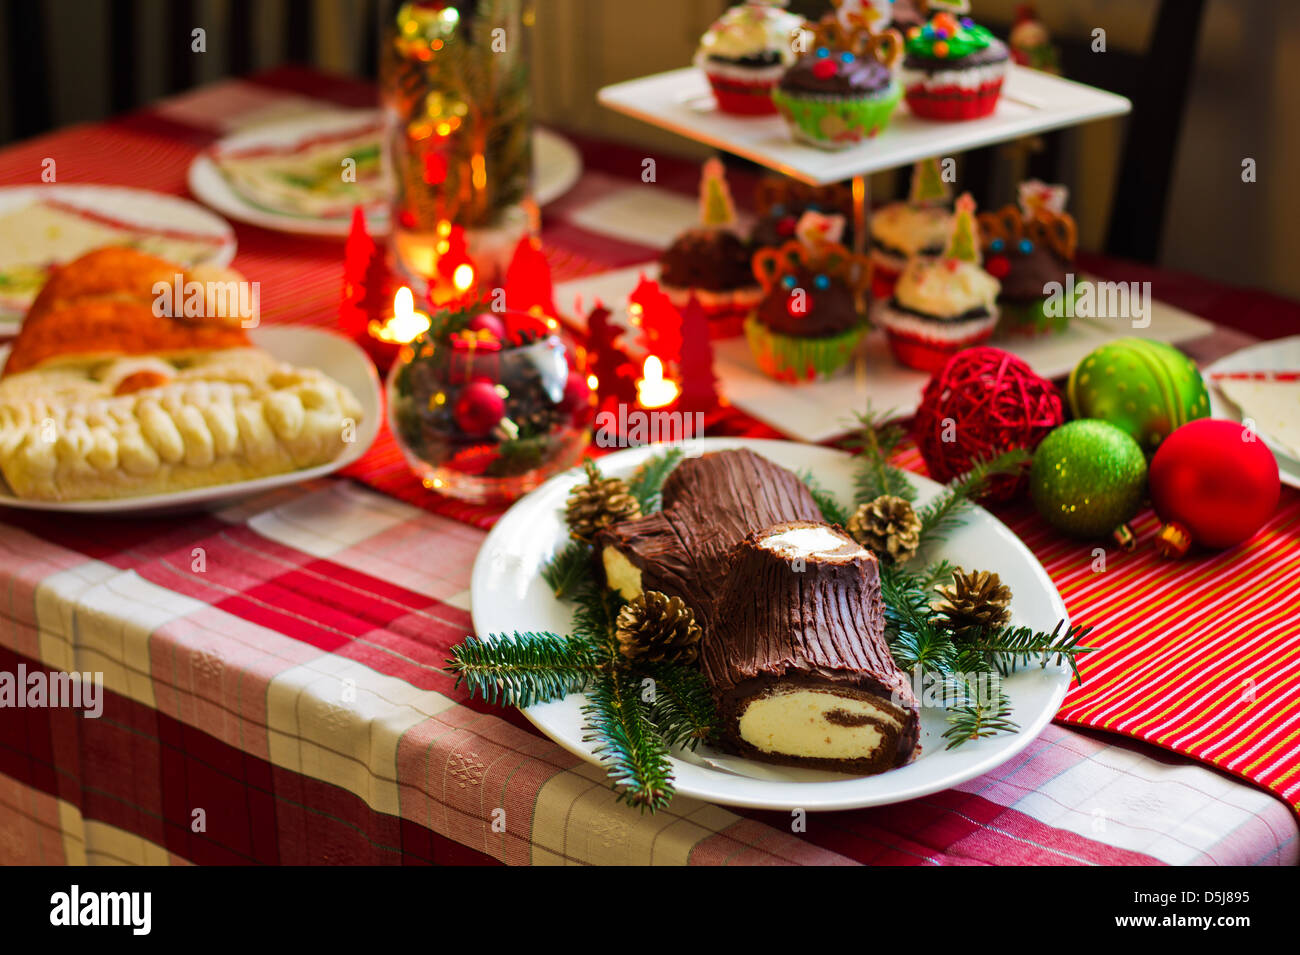 Traditional French Christmas Table With Christmas Yule Log Cake With